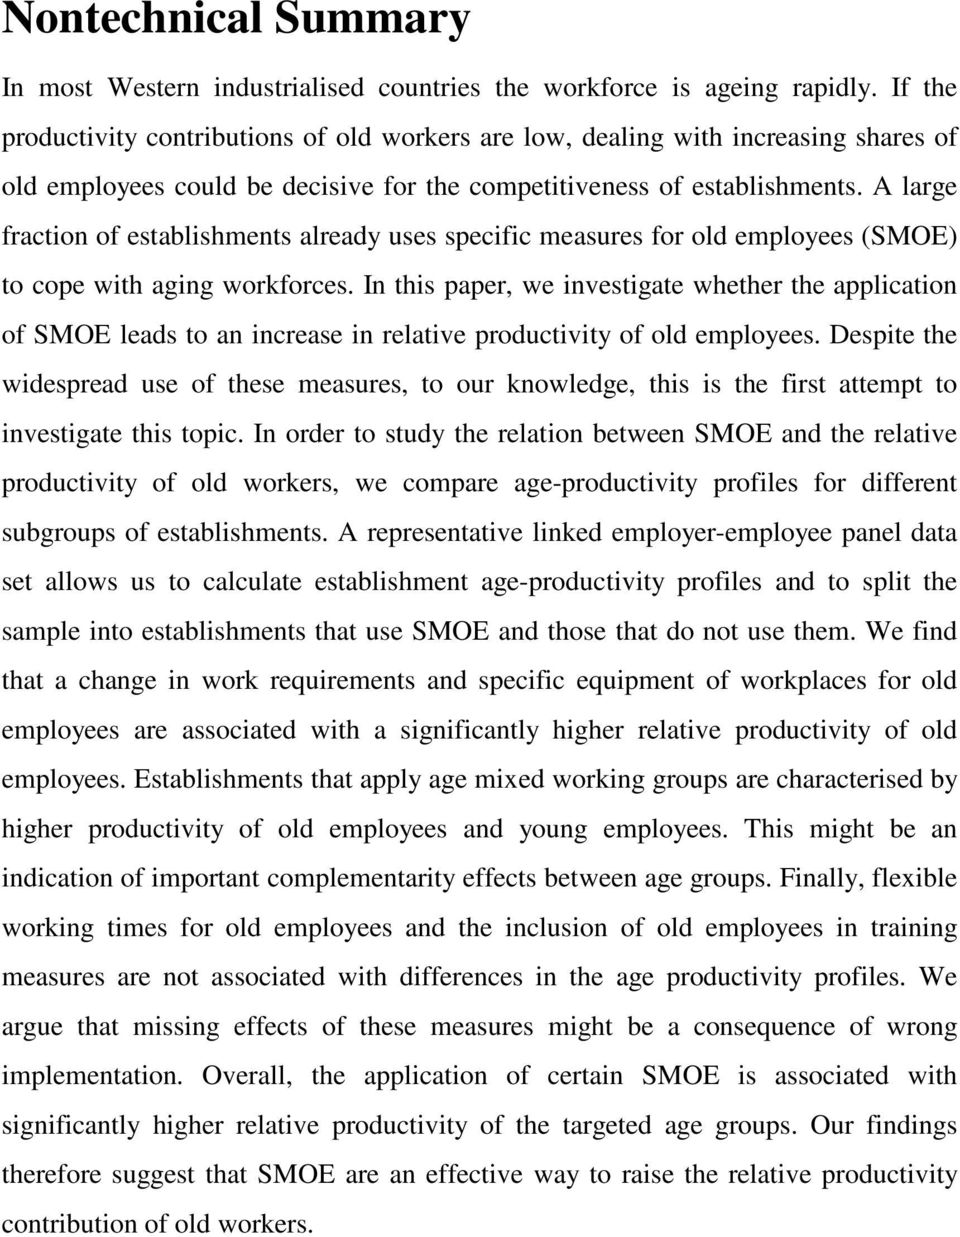 A large fraction of establishments already uses specific measures for old employees (SMOE) to cope with aging workforces.